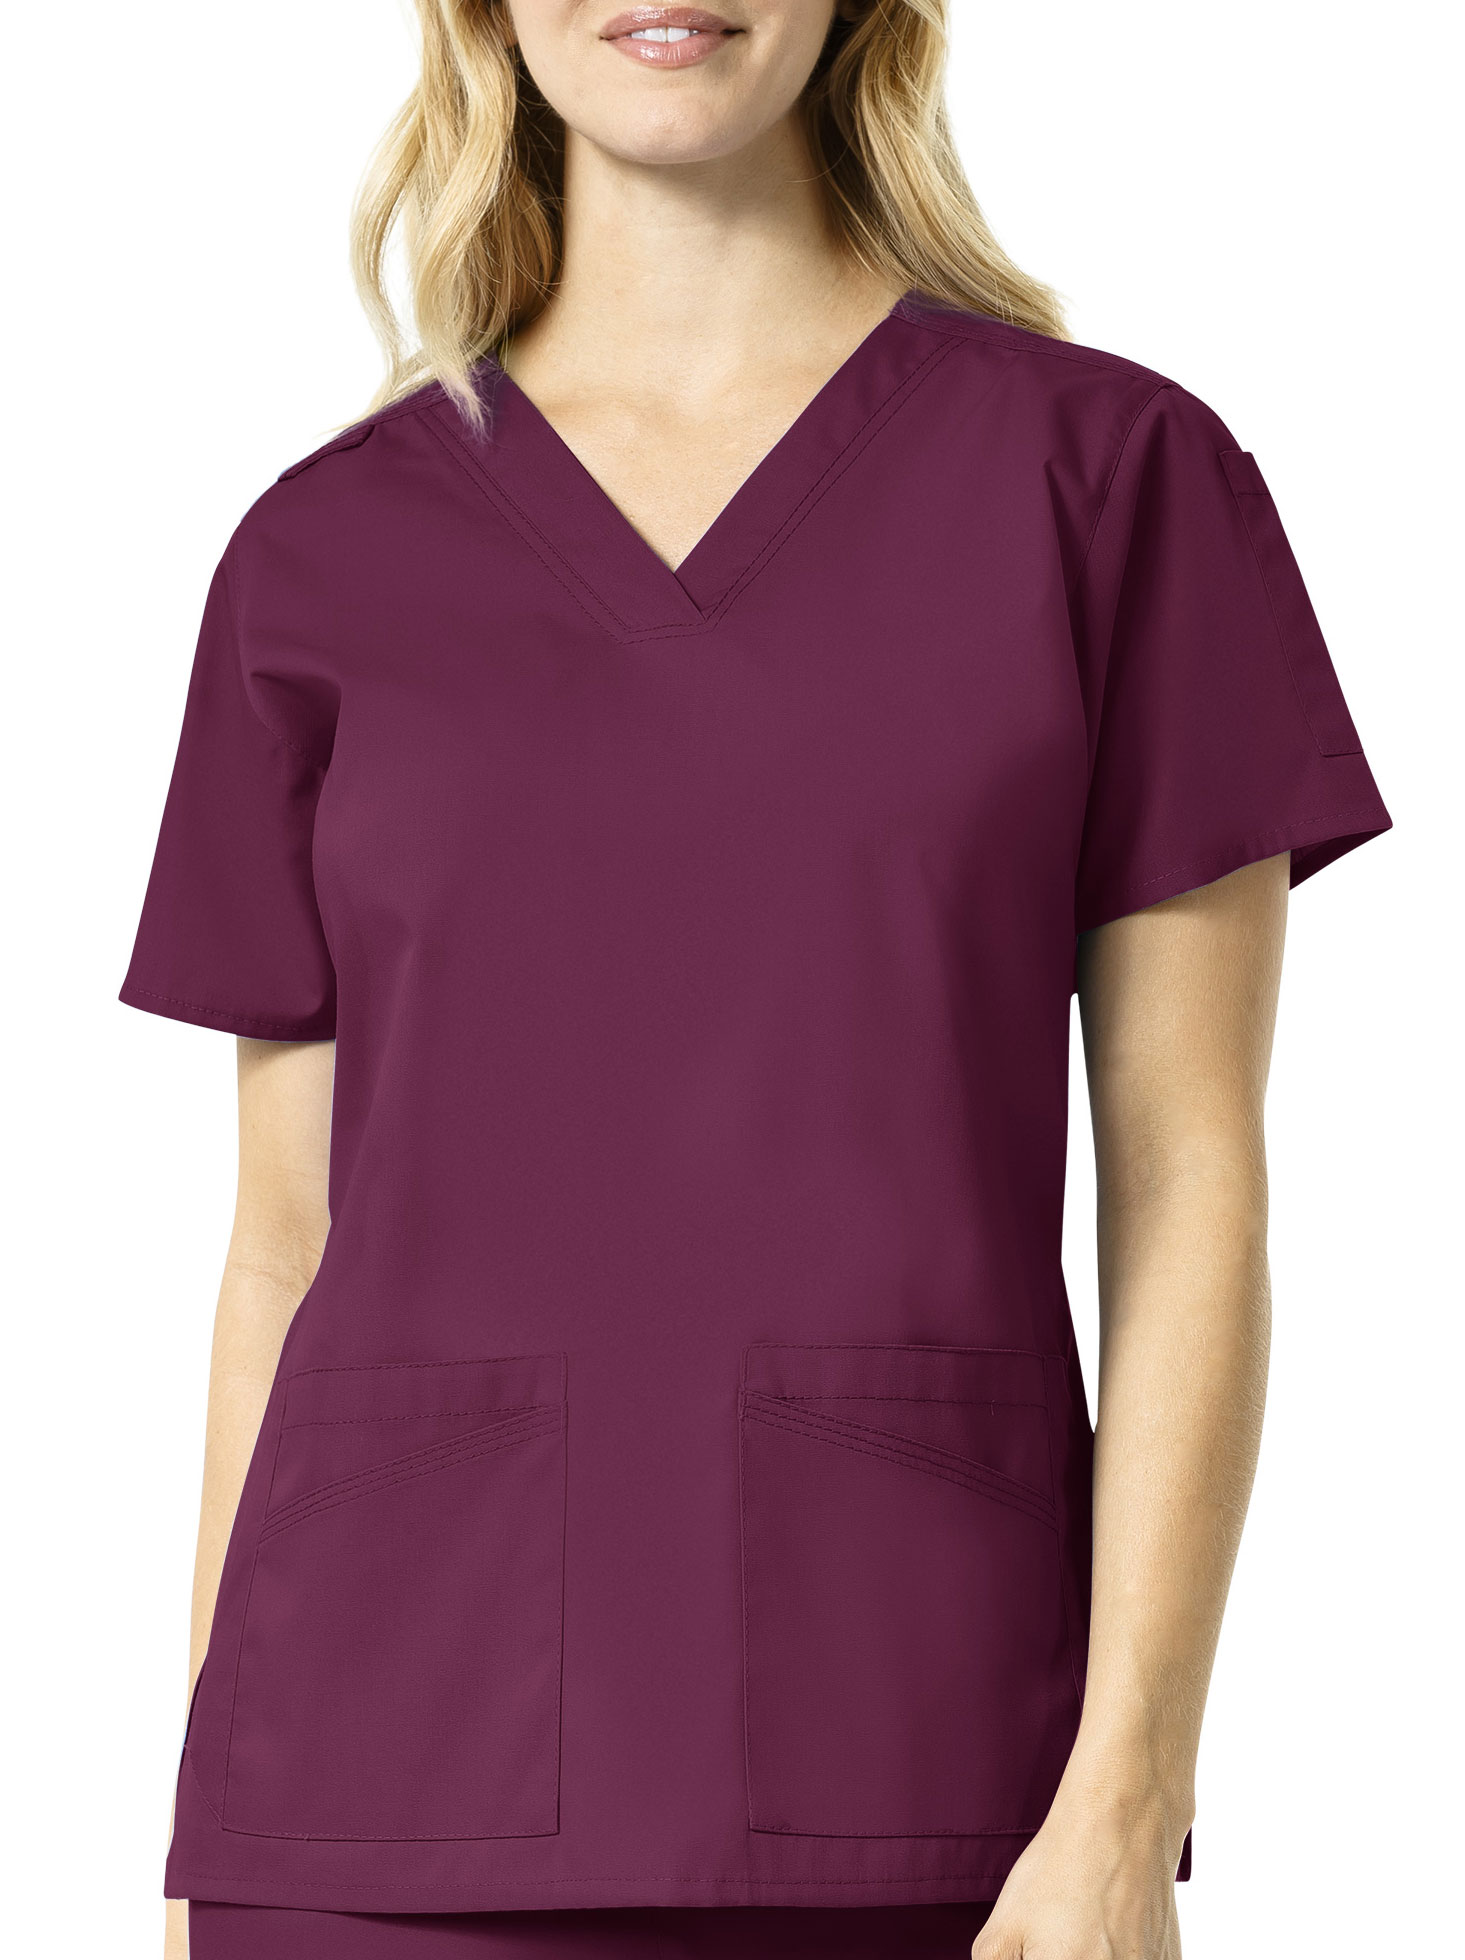 Carhart Medical Womens V-Neck Multi-Pocket Top